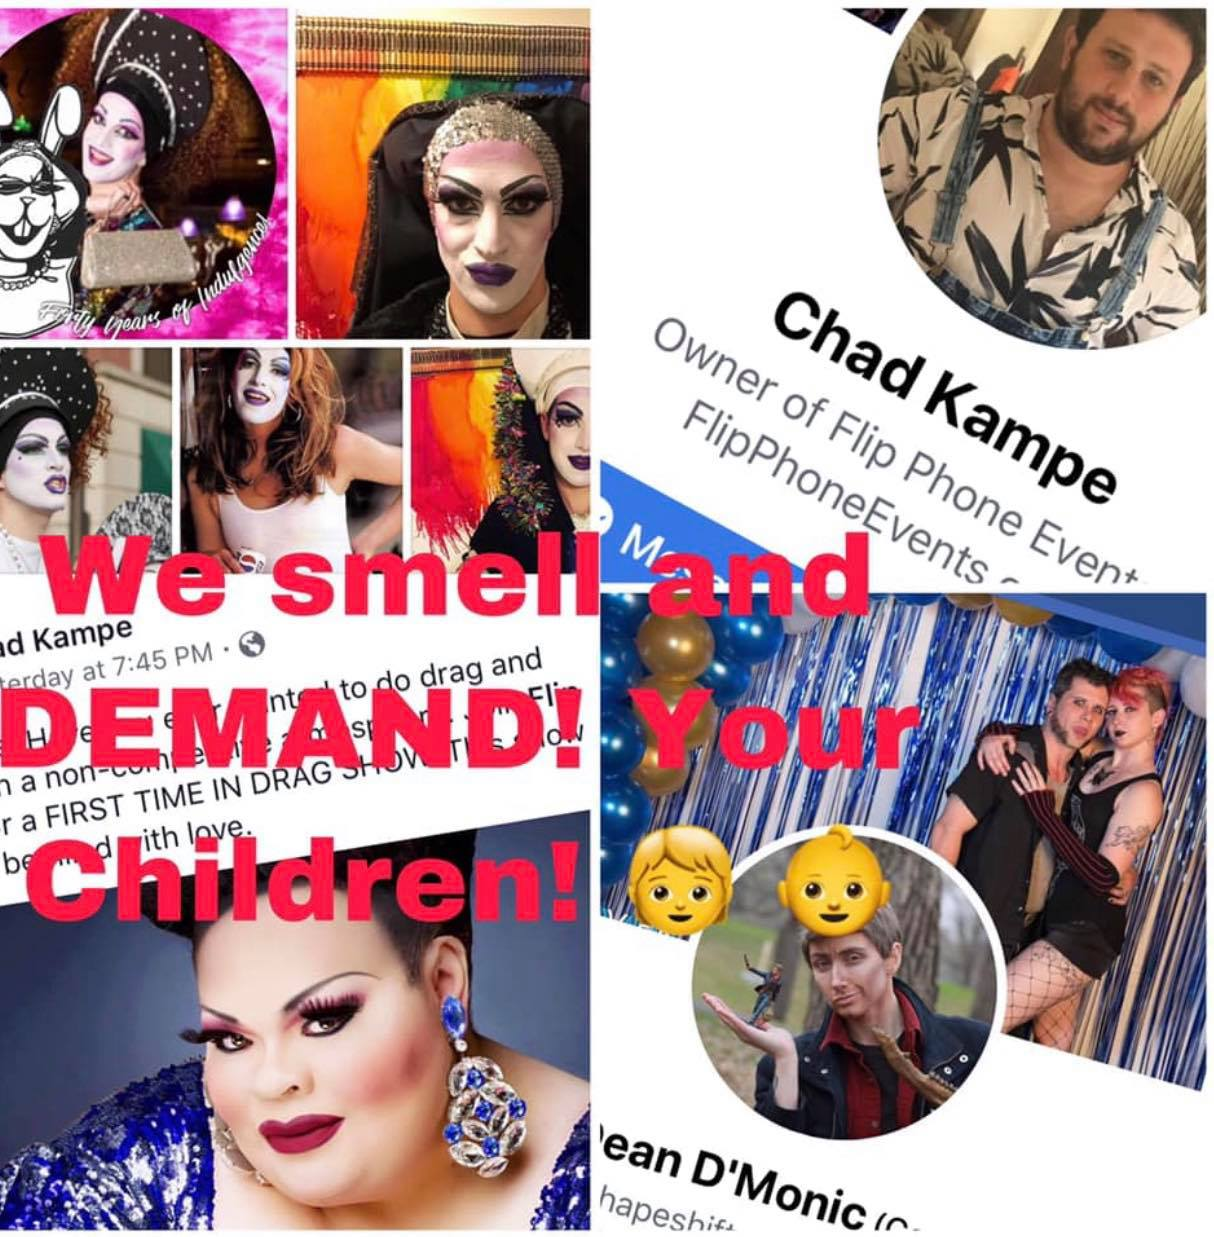 mall drag show collage